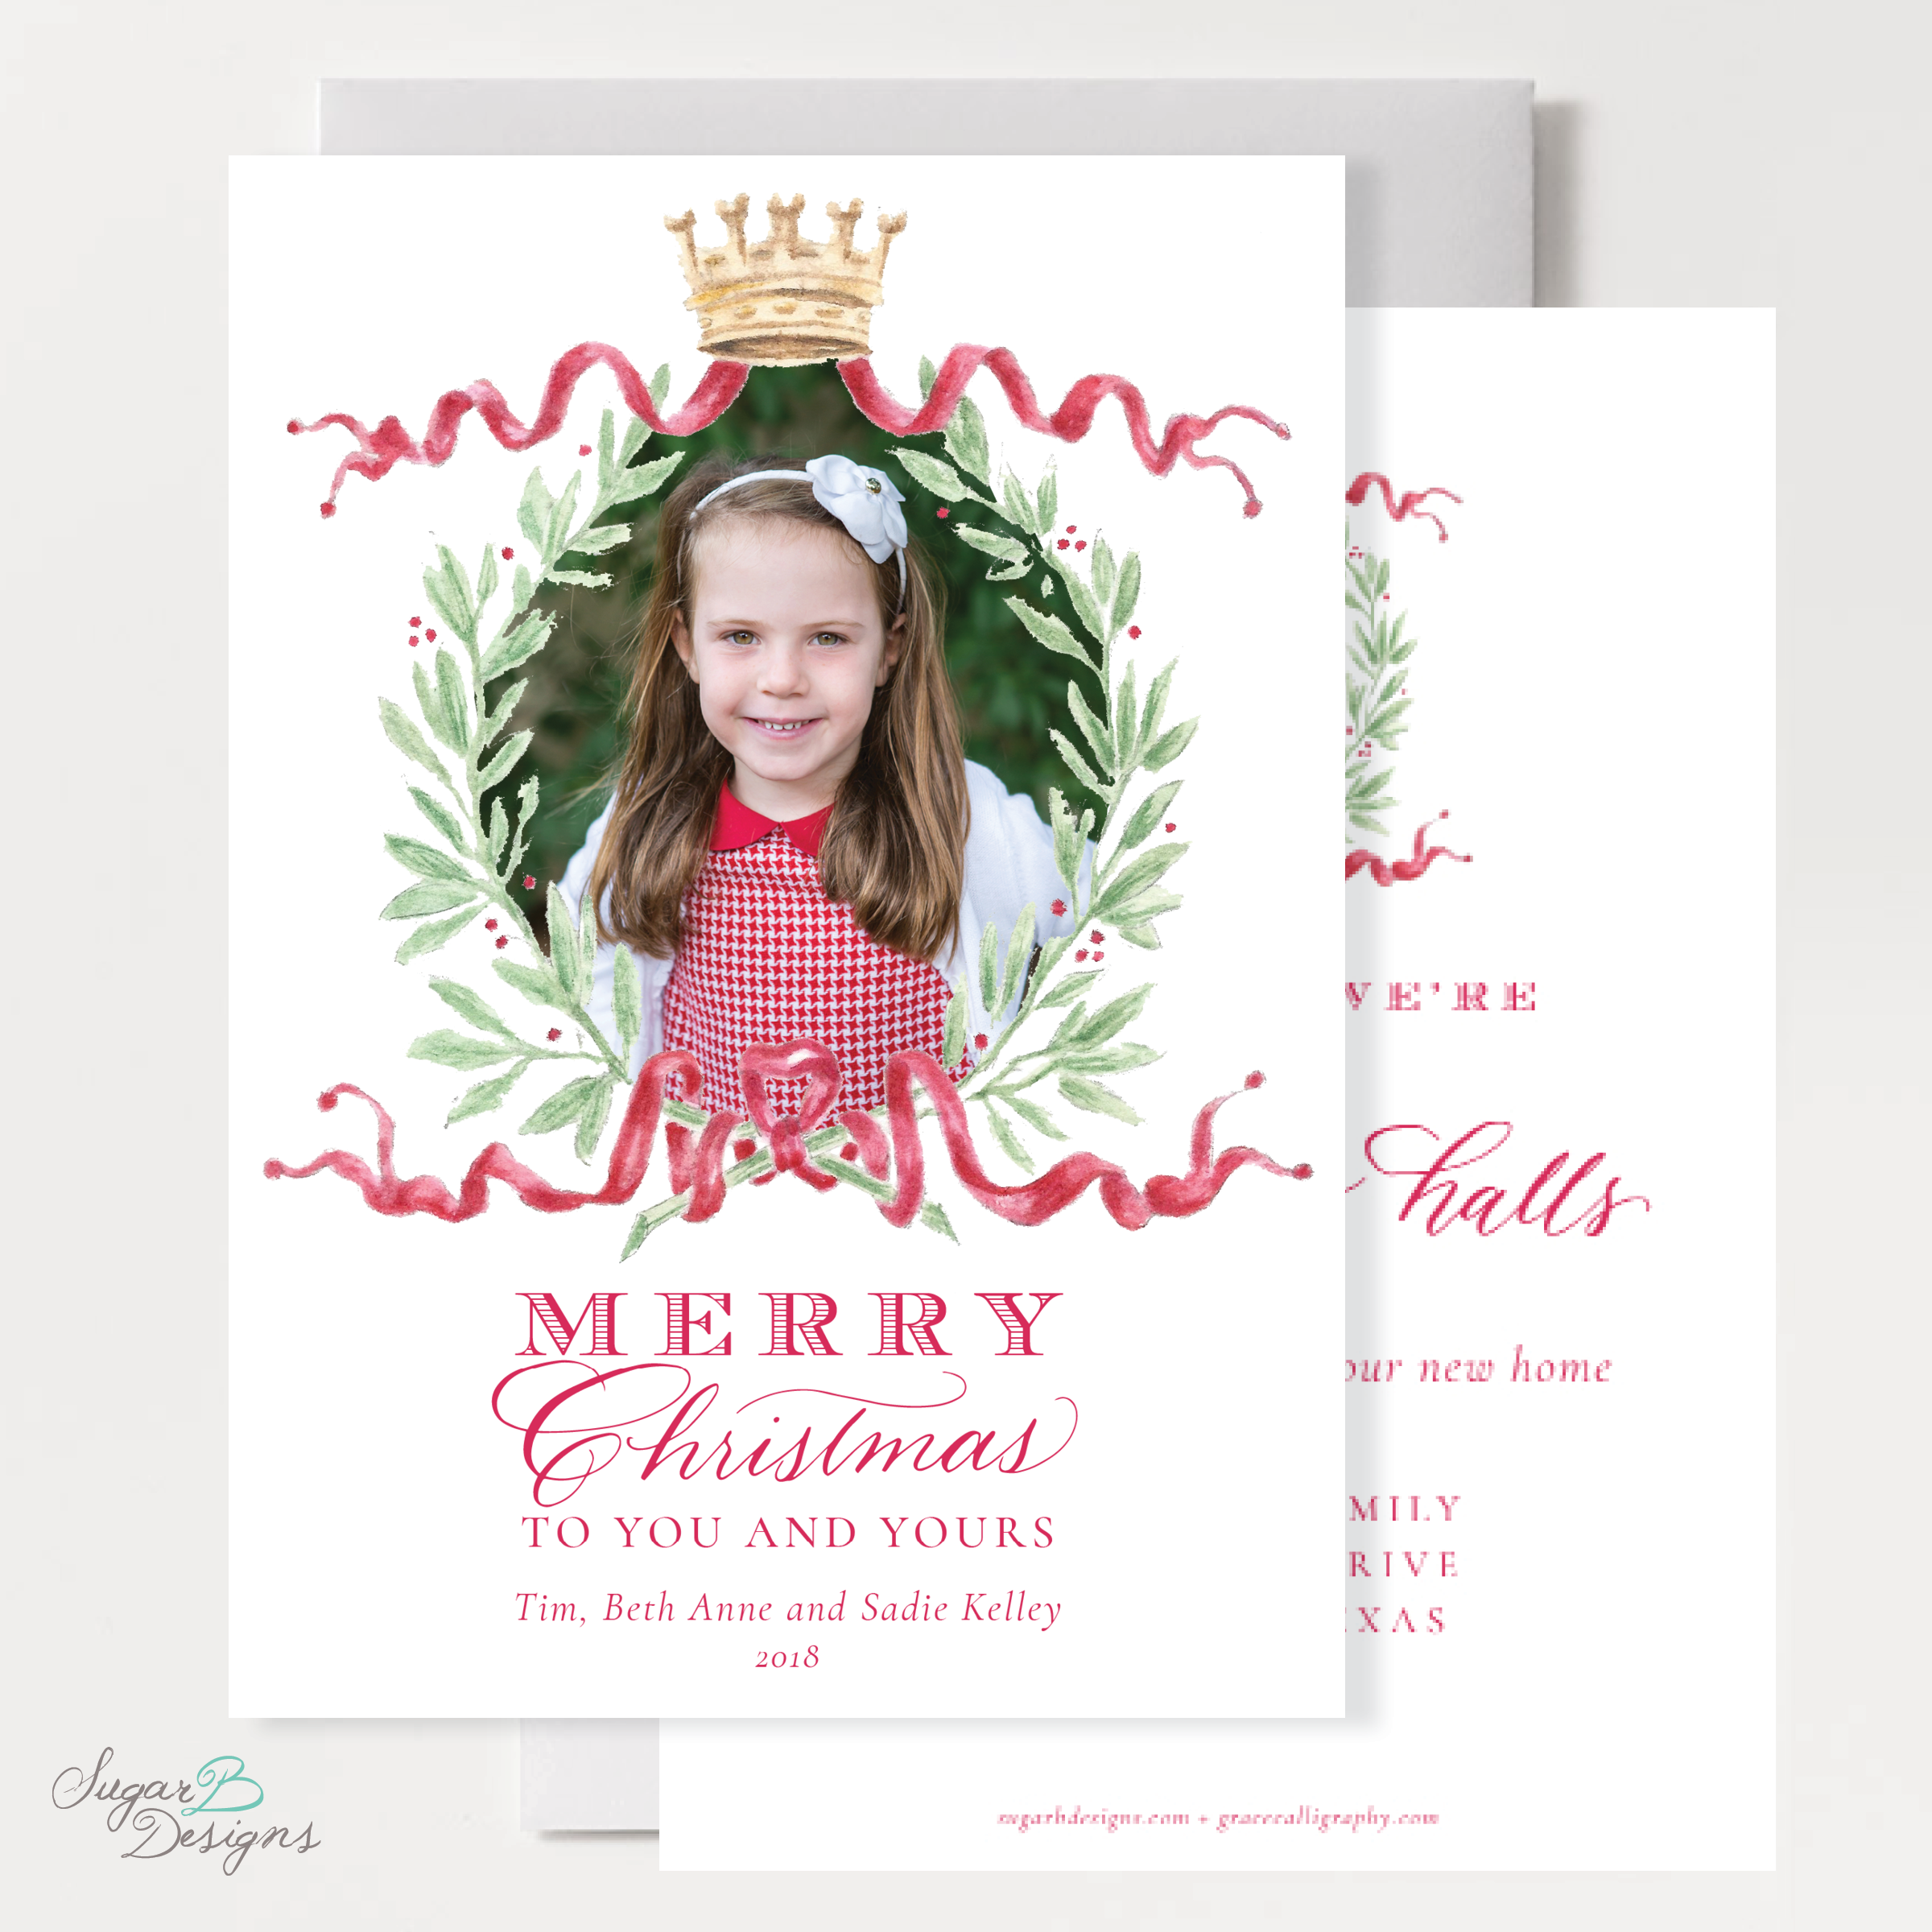 Royal Wreath Red Change of Address Christmas Card front + back by Sugar B Designs.png